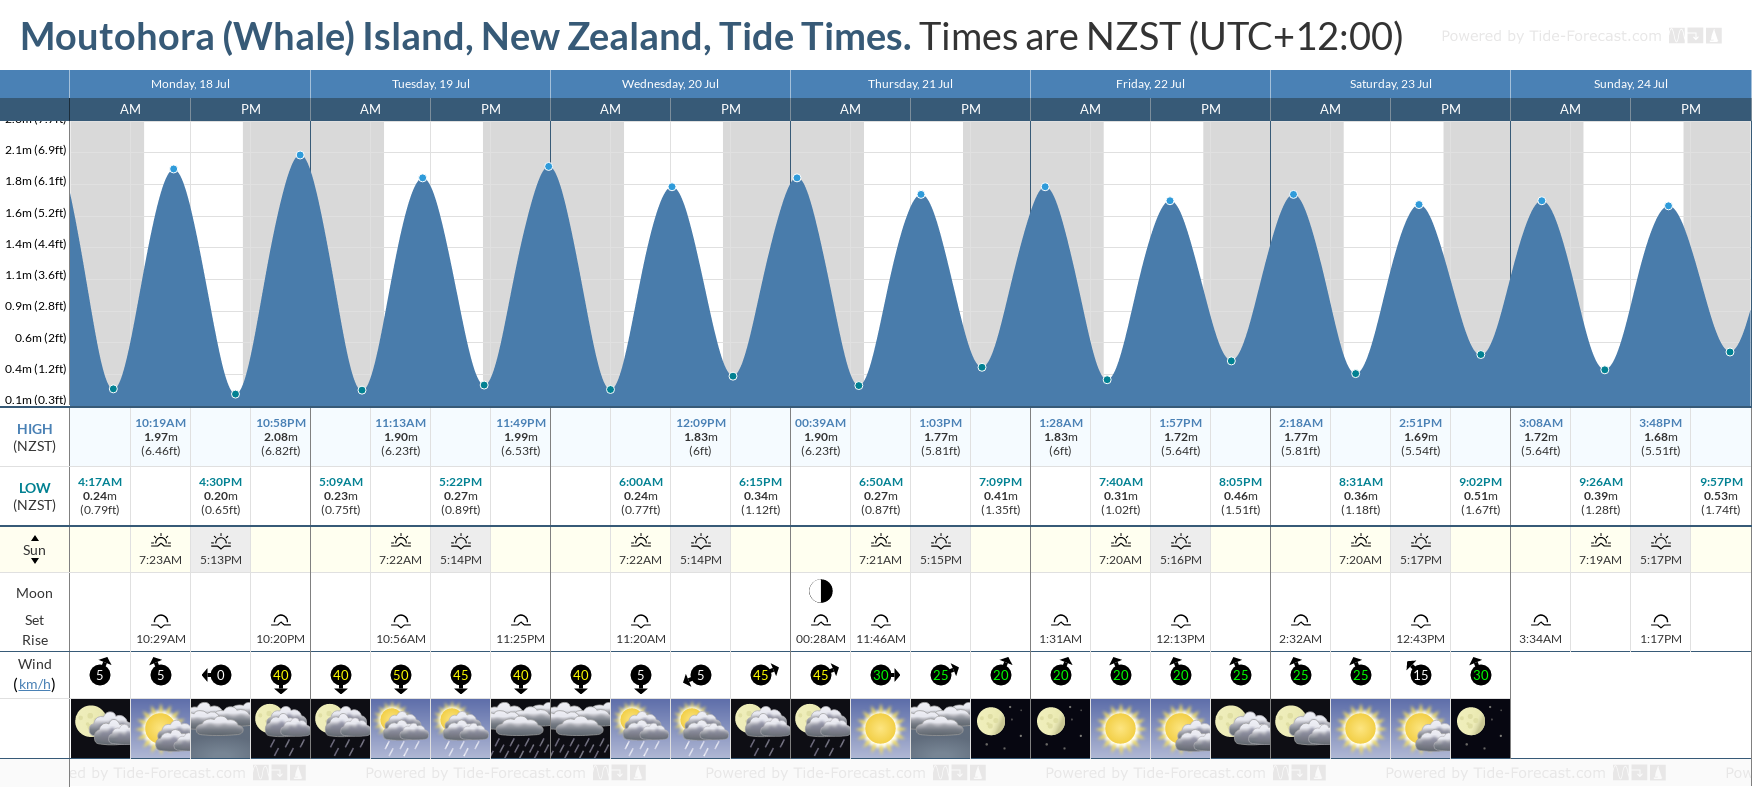 Moutohora (Whale) Island, New Zealand Tide Chart including high and low tide tide times for the next 7 days